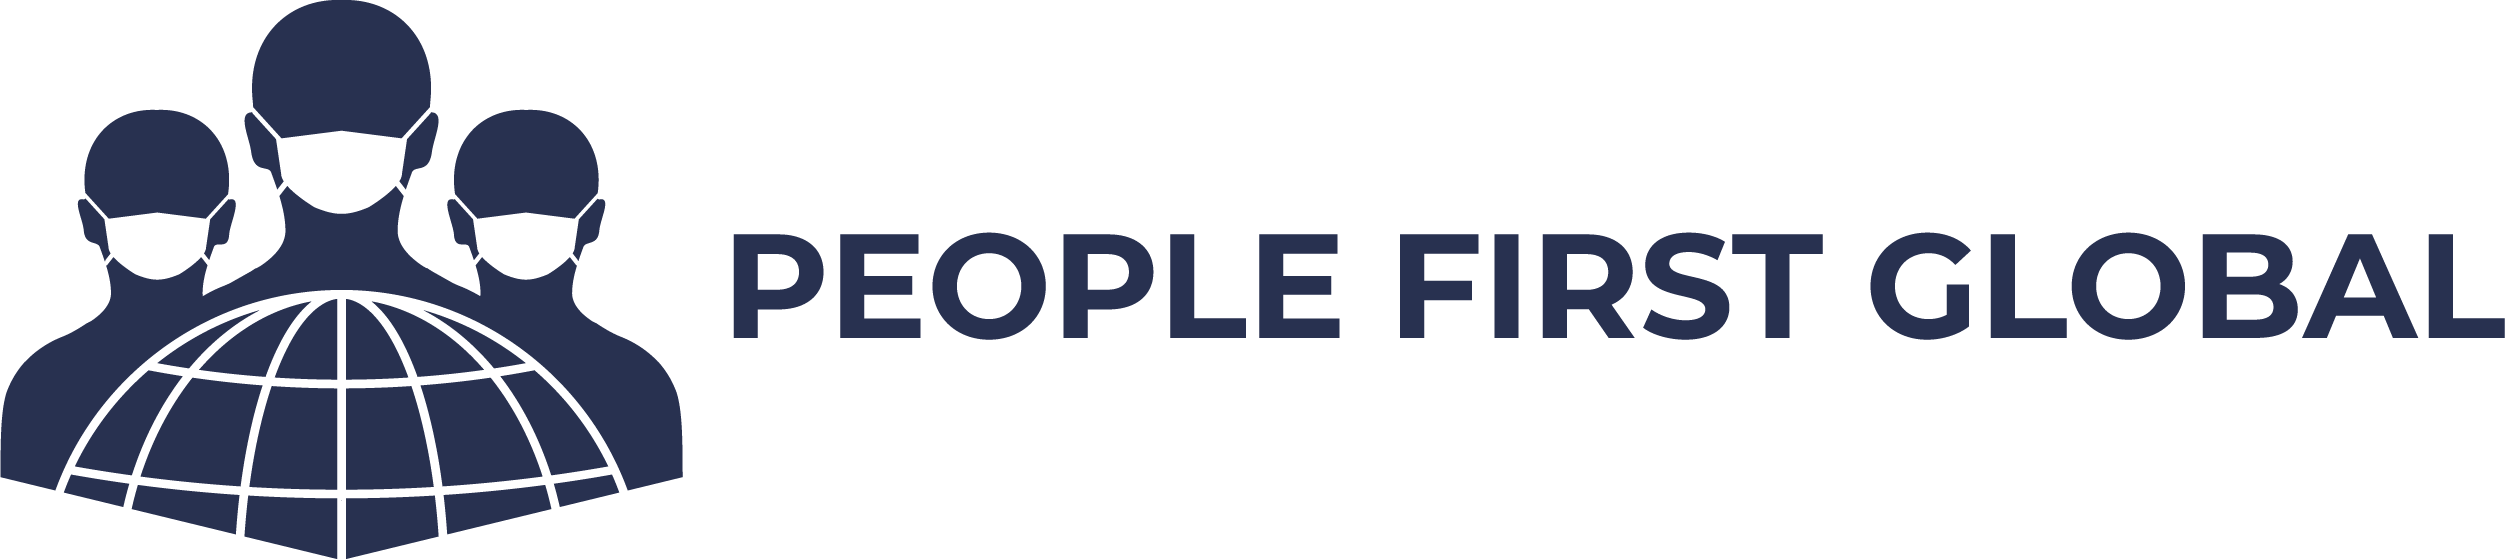 People First Global